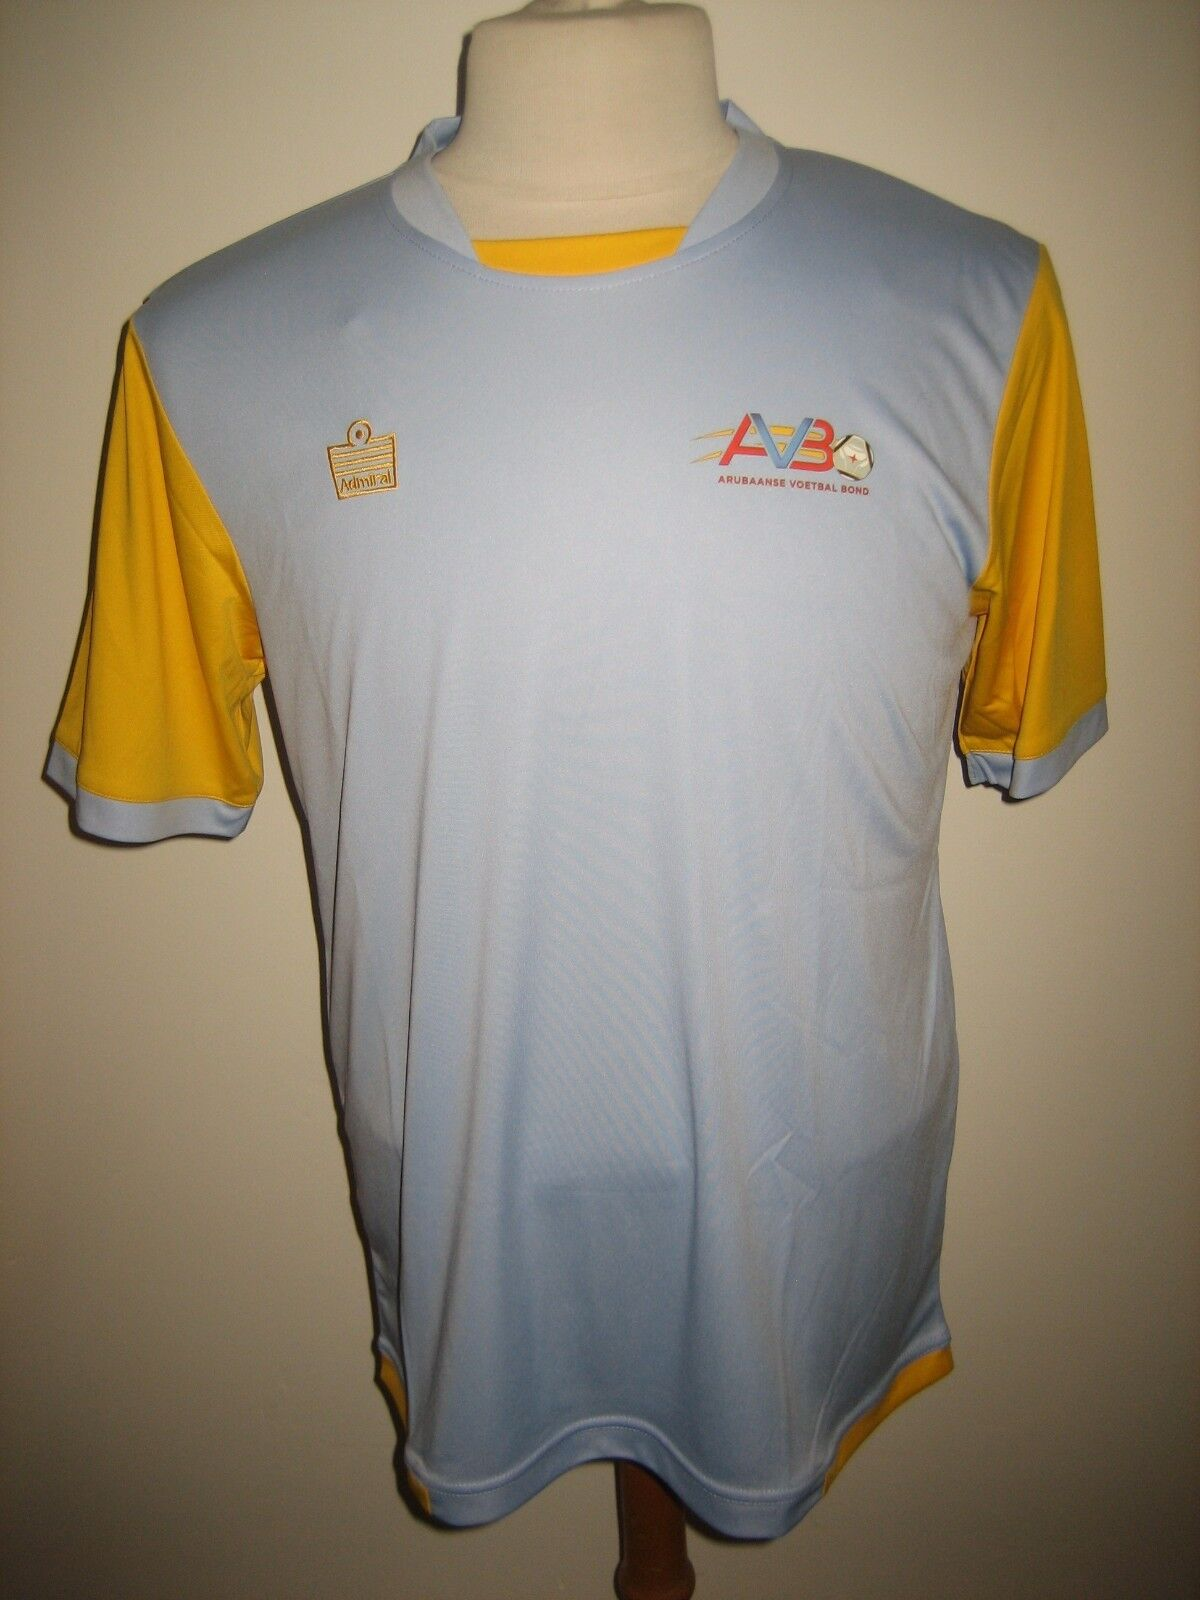 Aruba away football shirt soccer jersey maillot trikot camiseta Holland Dimensione XL